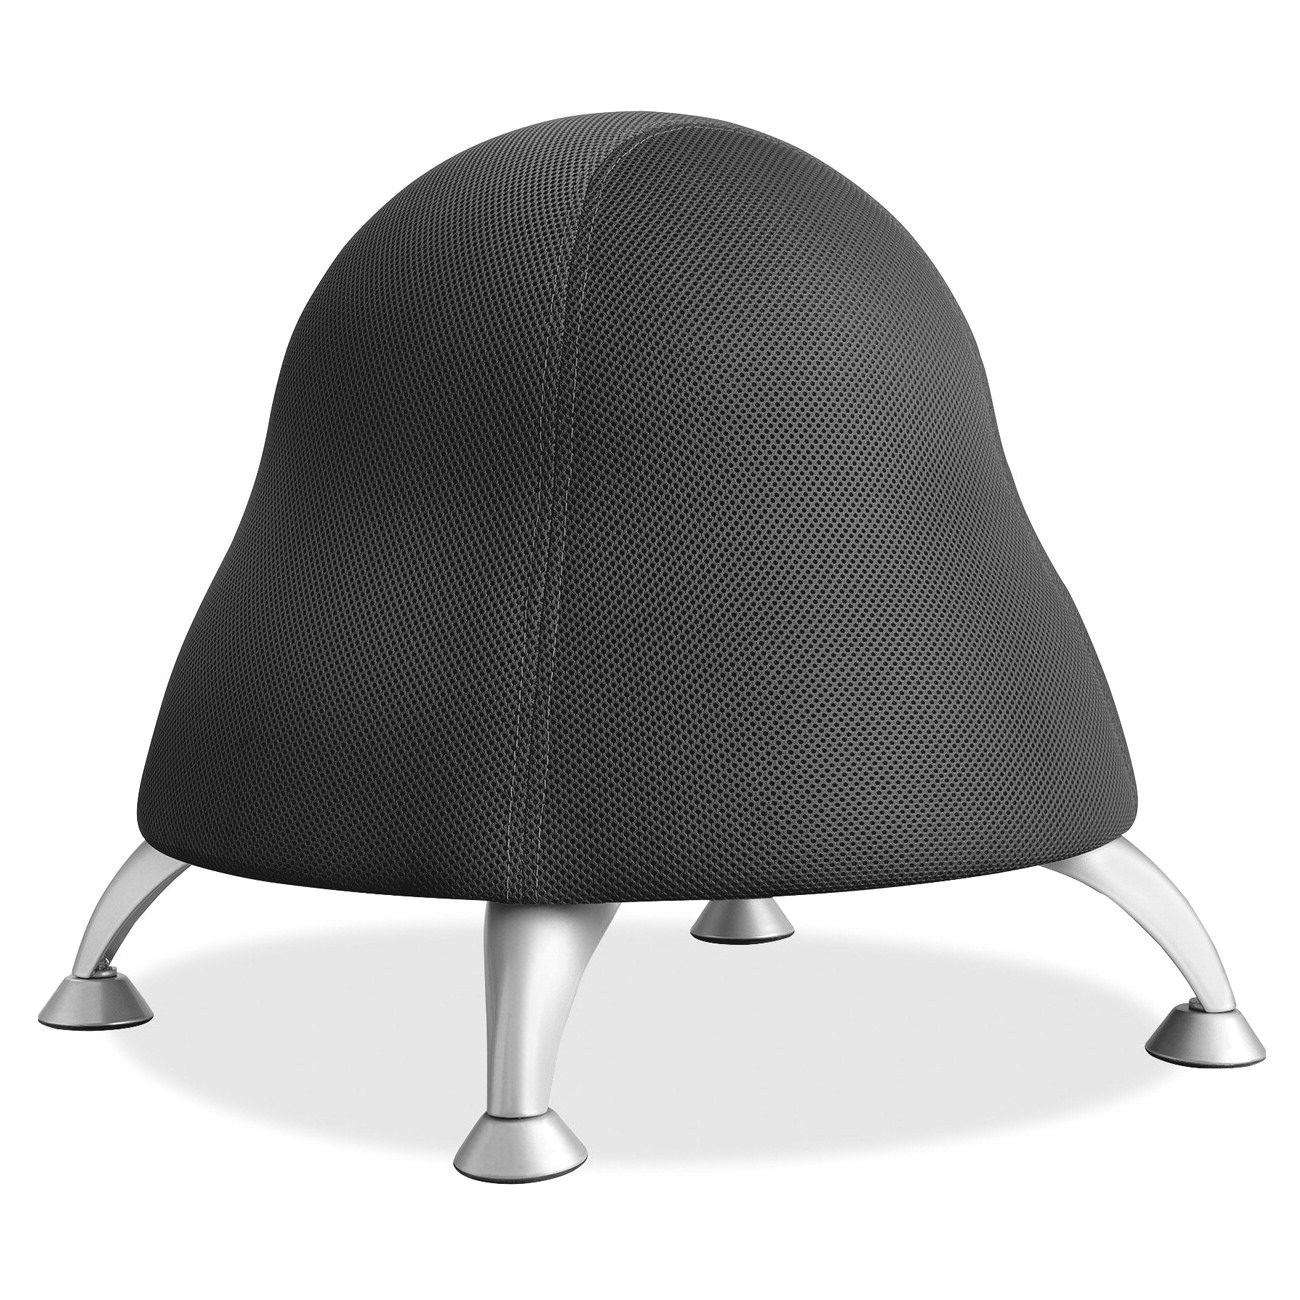 Balance Ball Chair Frame Only: Safco Runtz Ball Chair, Black